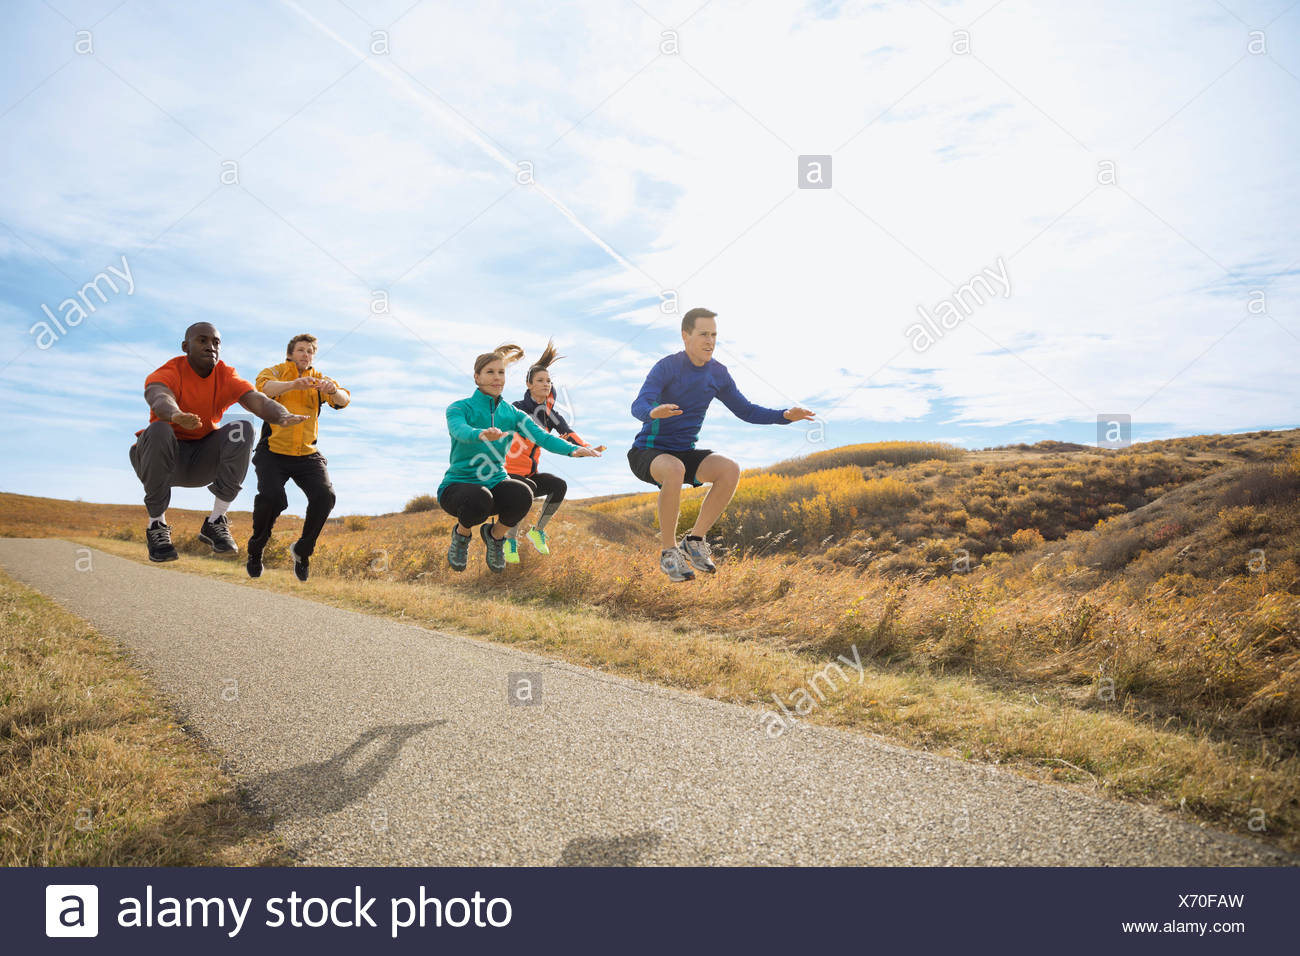 Fitness group jumping on rural path - Stock Image